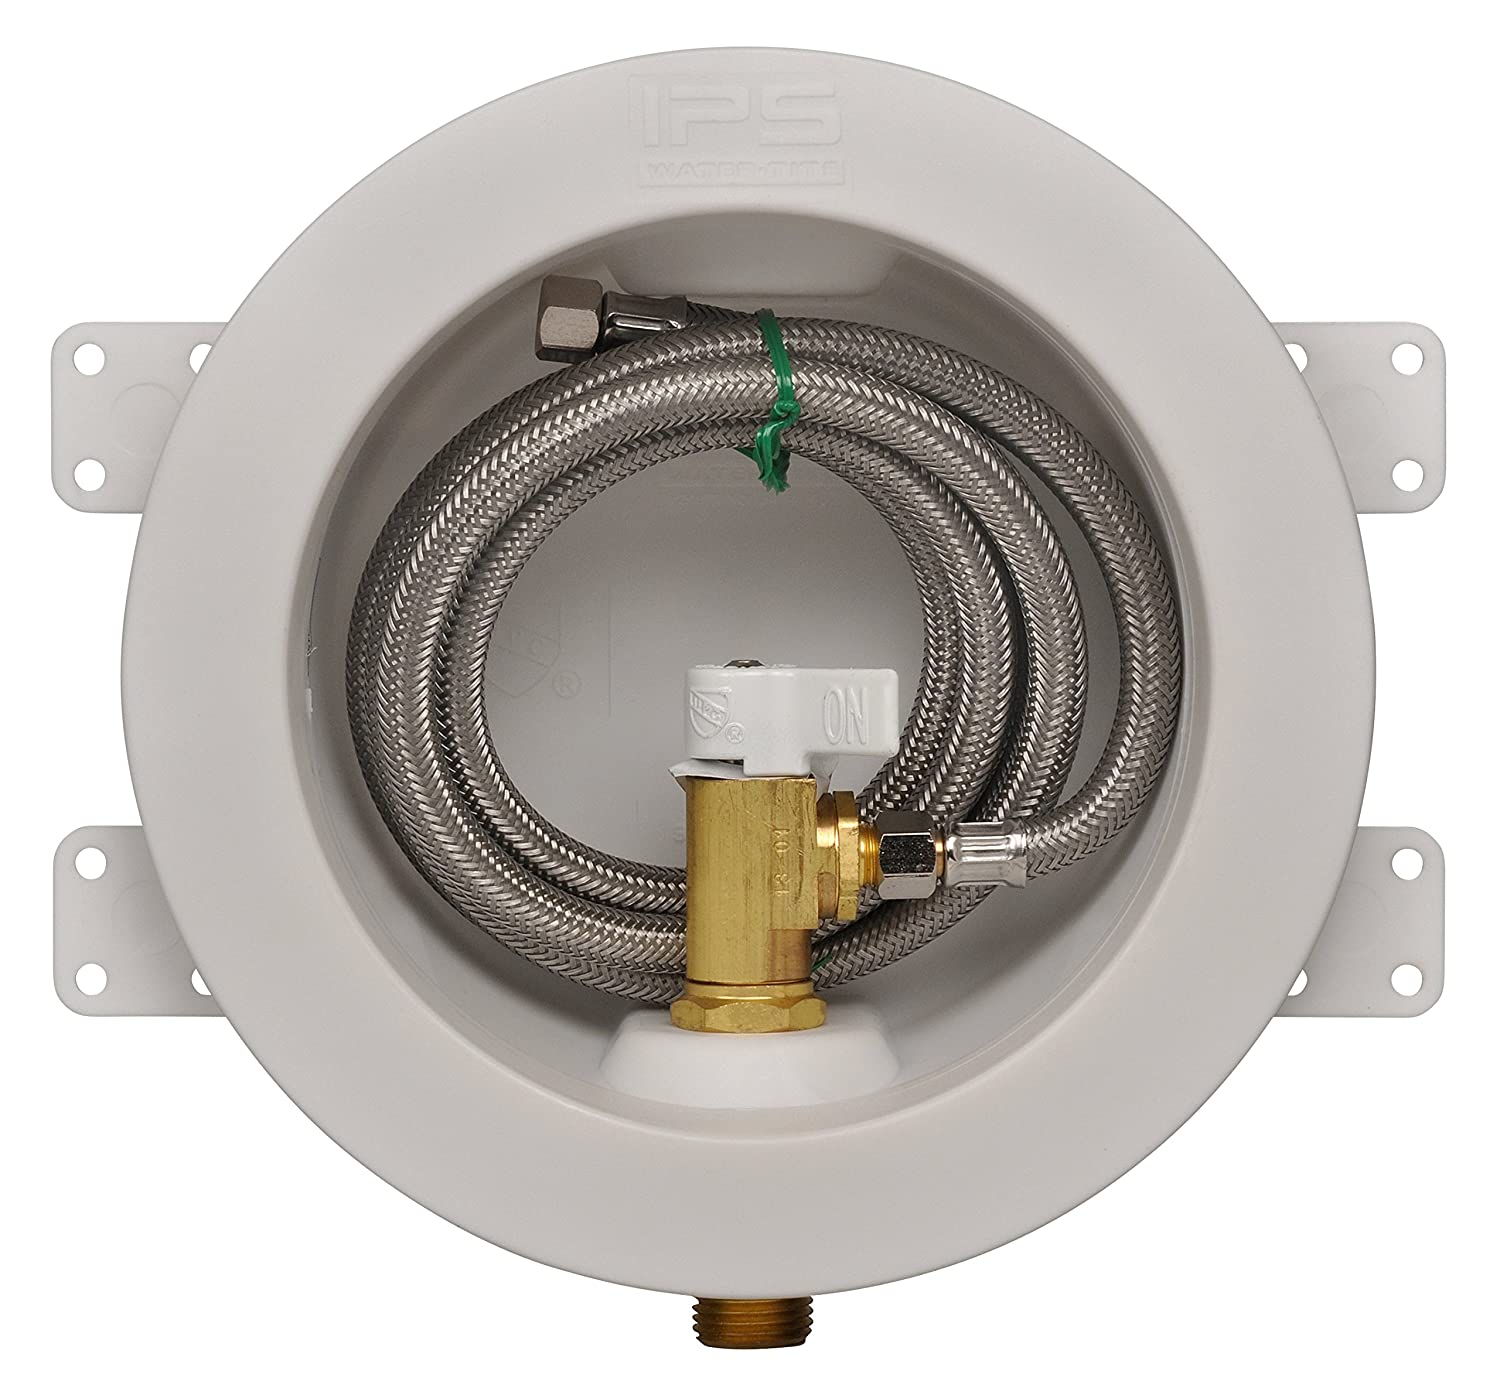 IPS CORPORATION GIDDS-284201 Ips Water-Tite Round Icemaker Valve Outlet Box with Quarter Turn Valve And Stainless Supply Line, Copper Sweat, Lead Free